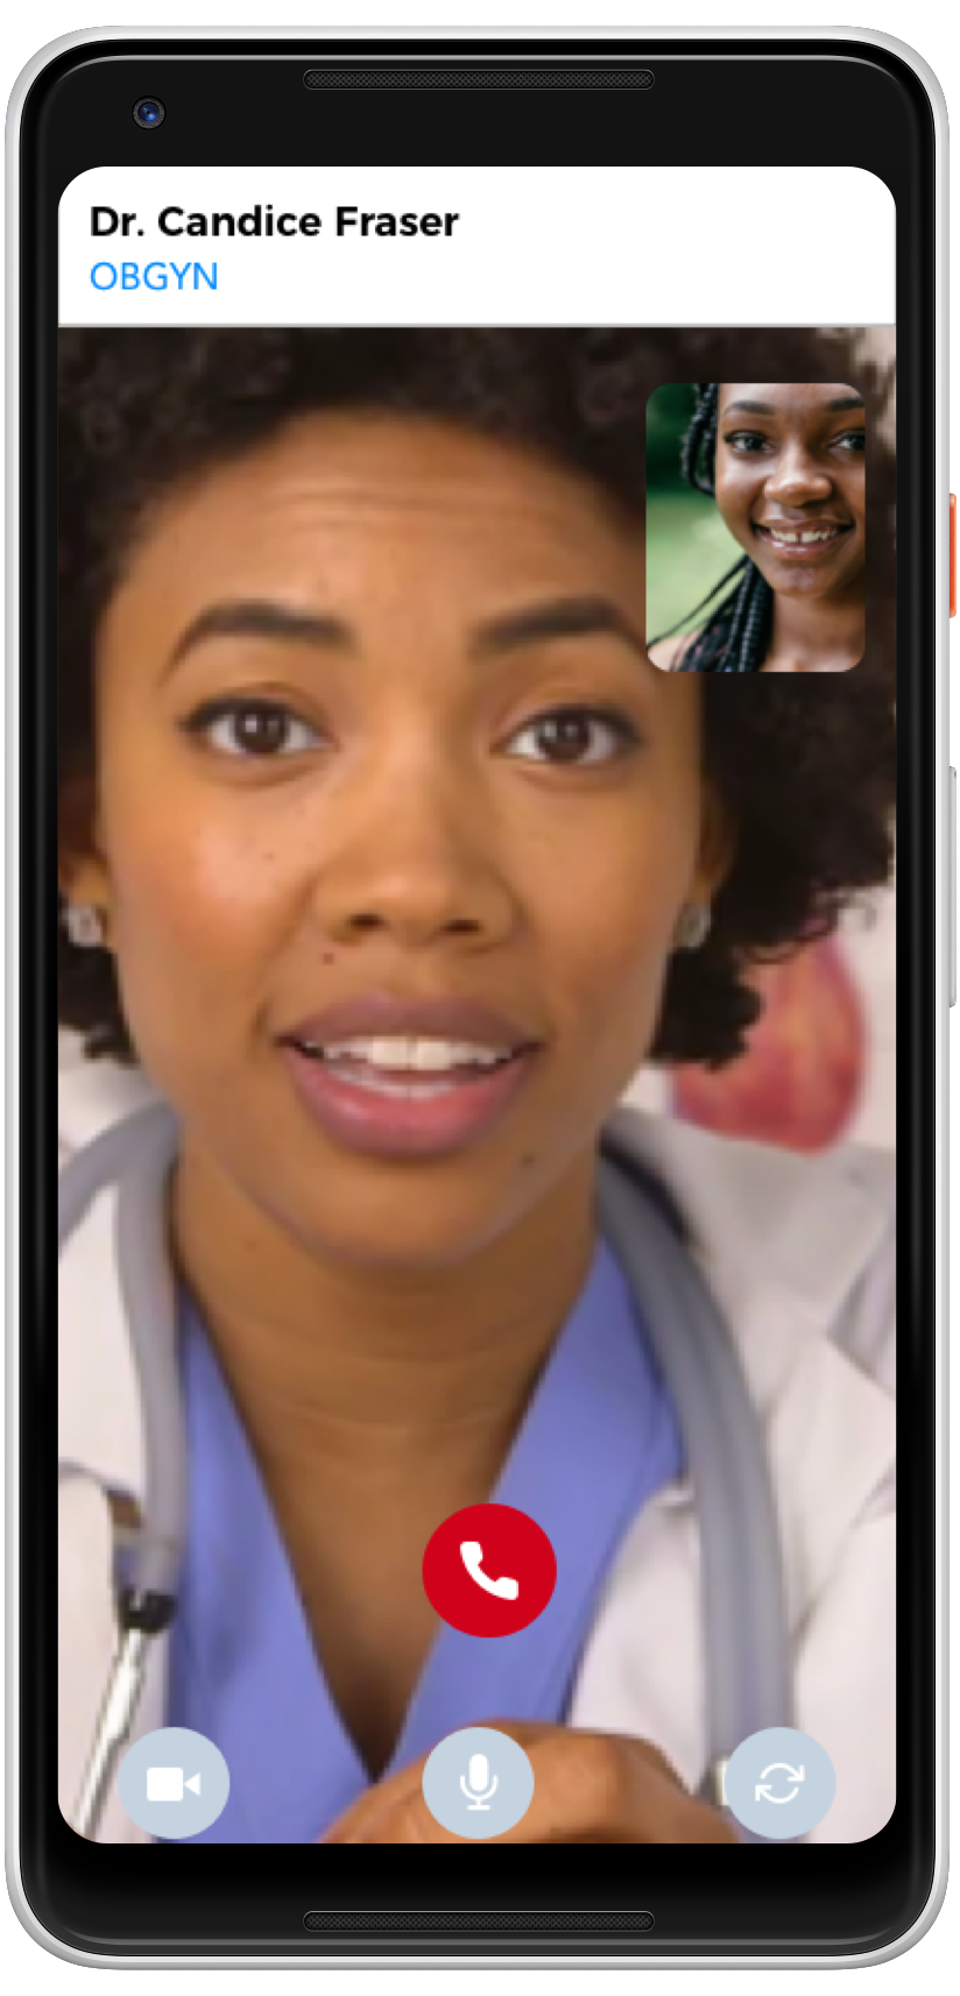 Image of a phone screen with a doctor talking to a patient.